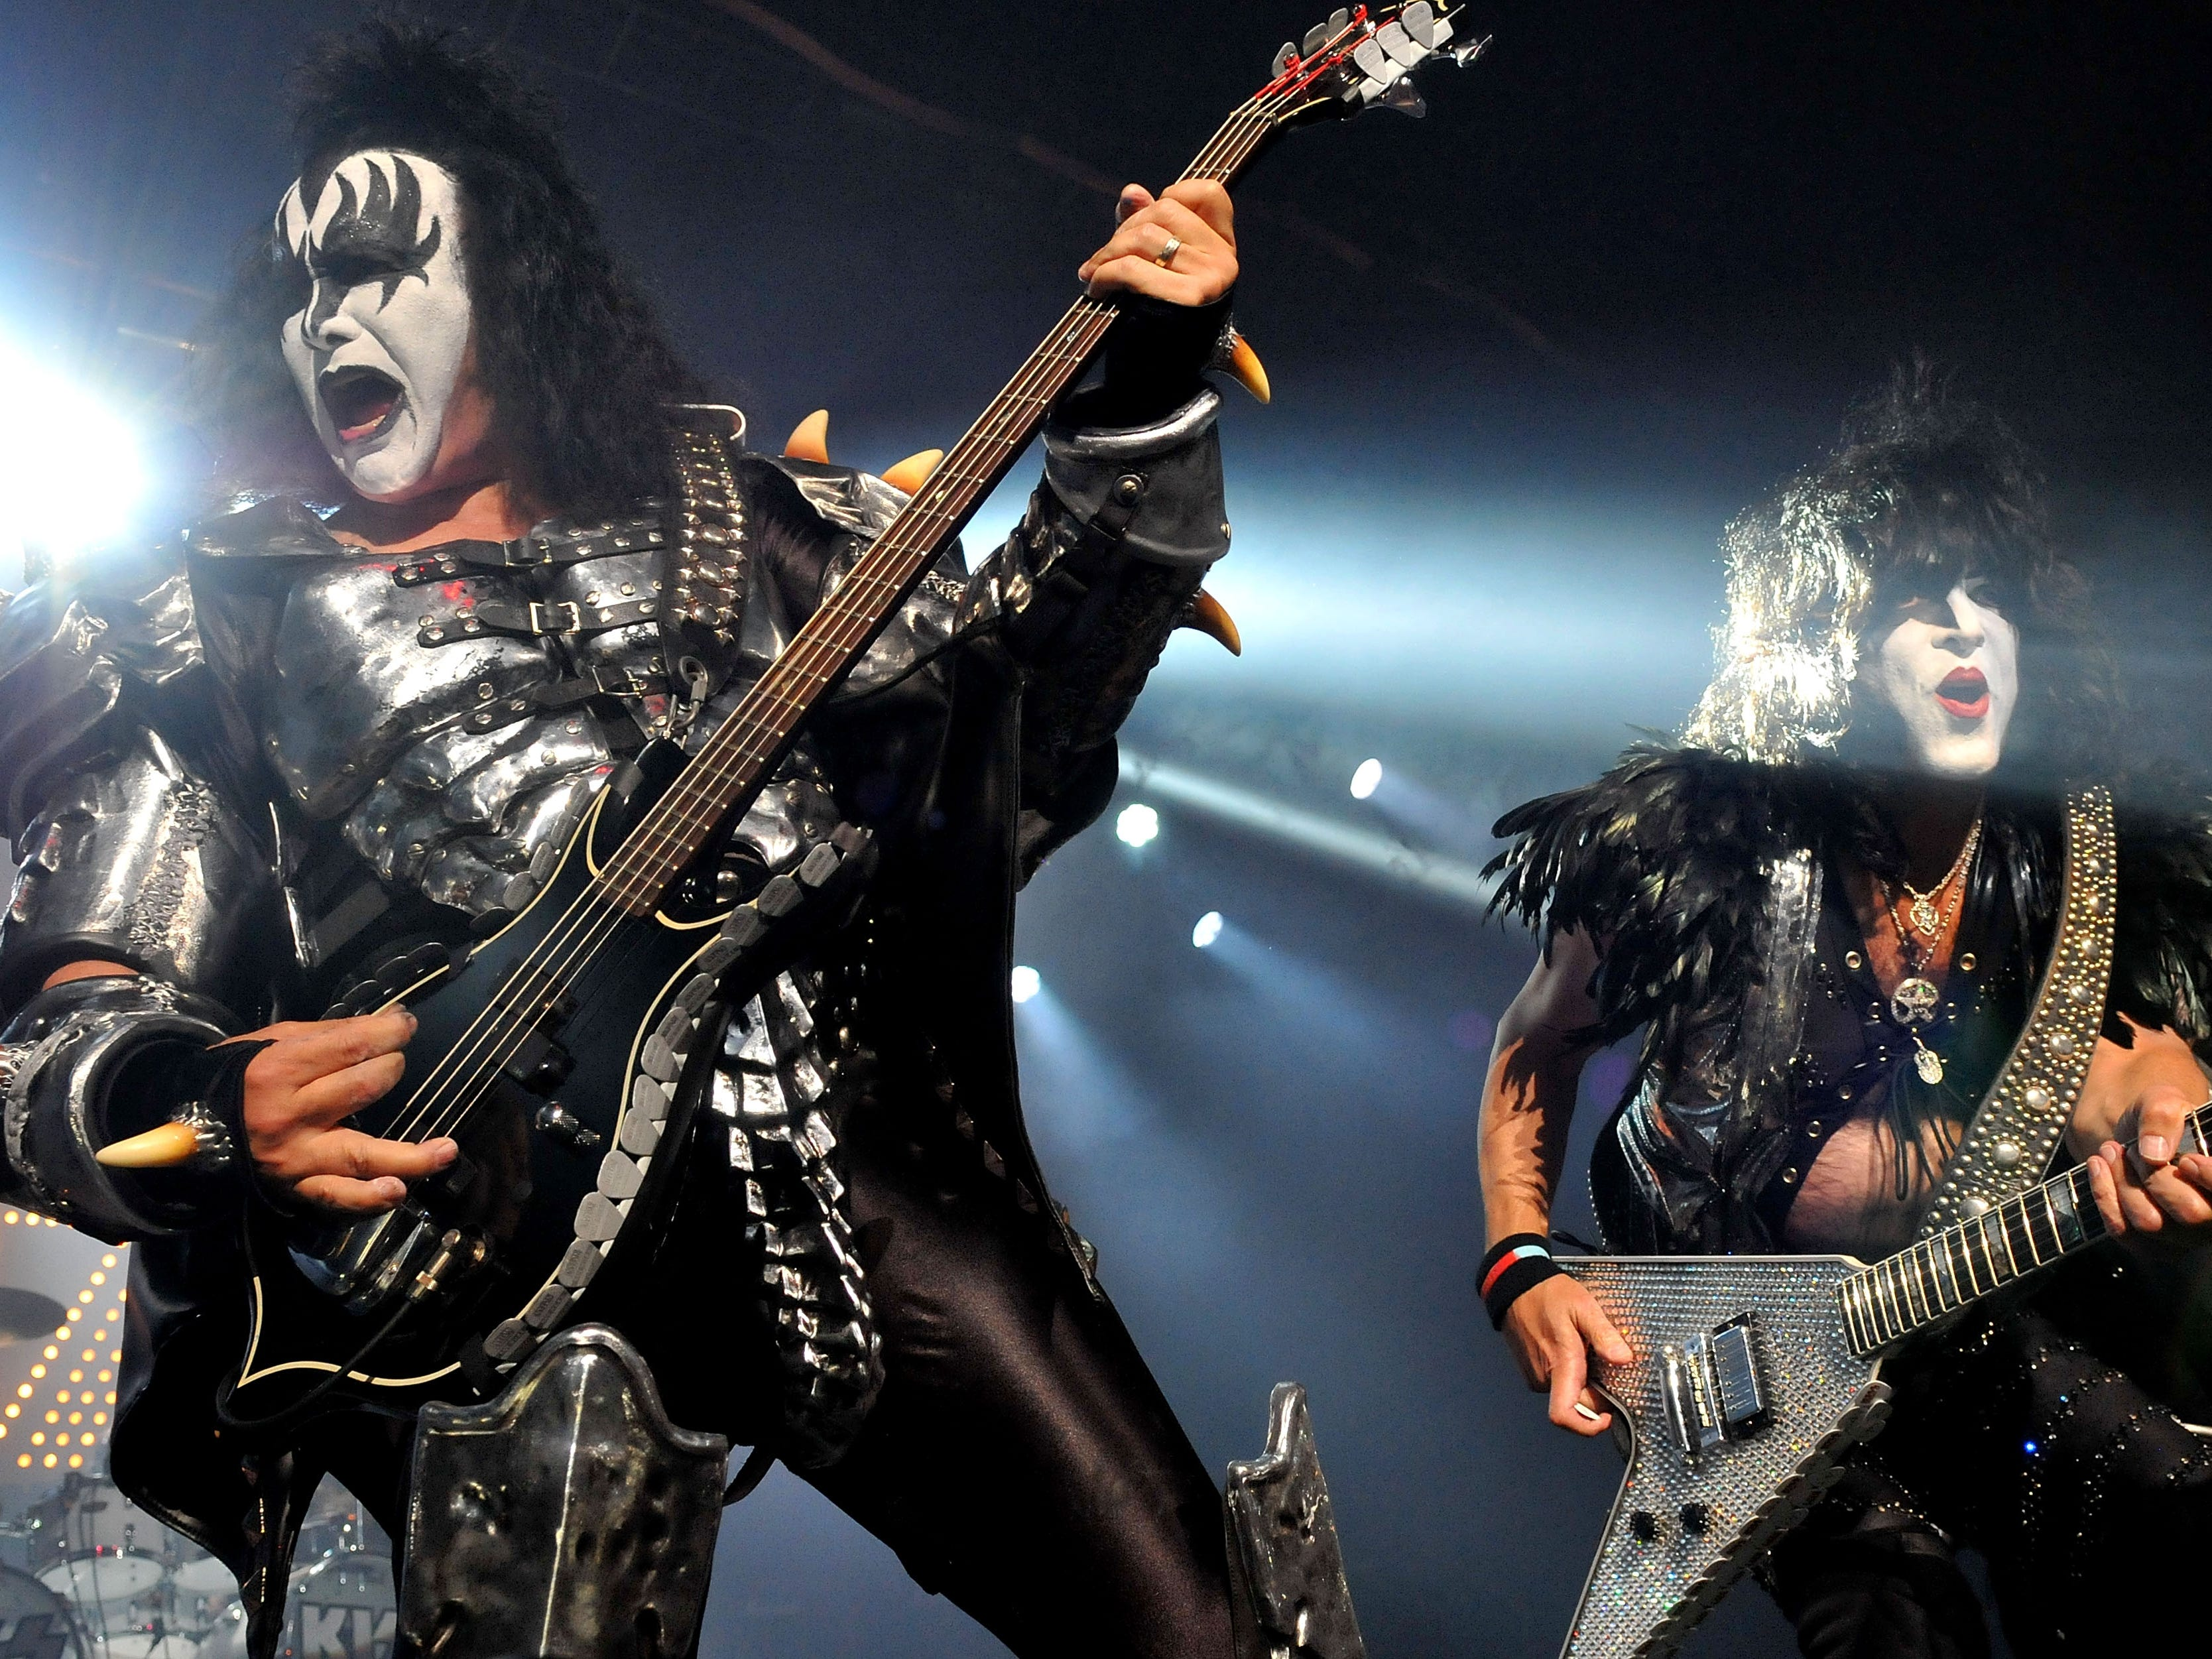 LONDON, ENGLAND - JULY 04:  Gene Simmons and Paul Stanley of US rock group Kiss perform live on stage, for a one-off Independence Day show as a fundraiser for the Help for Heroes charity, at The Kentish Town Forum on July 4, 2012 in London, England.  (Photo by Jim Dyson/Getty Images)